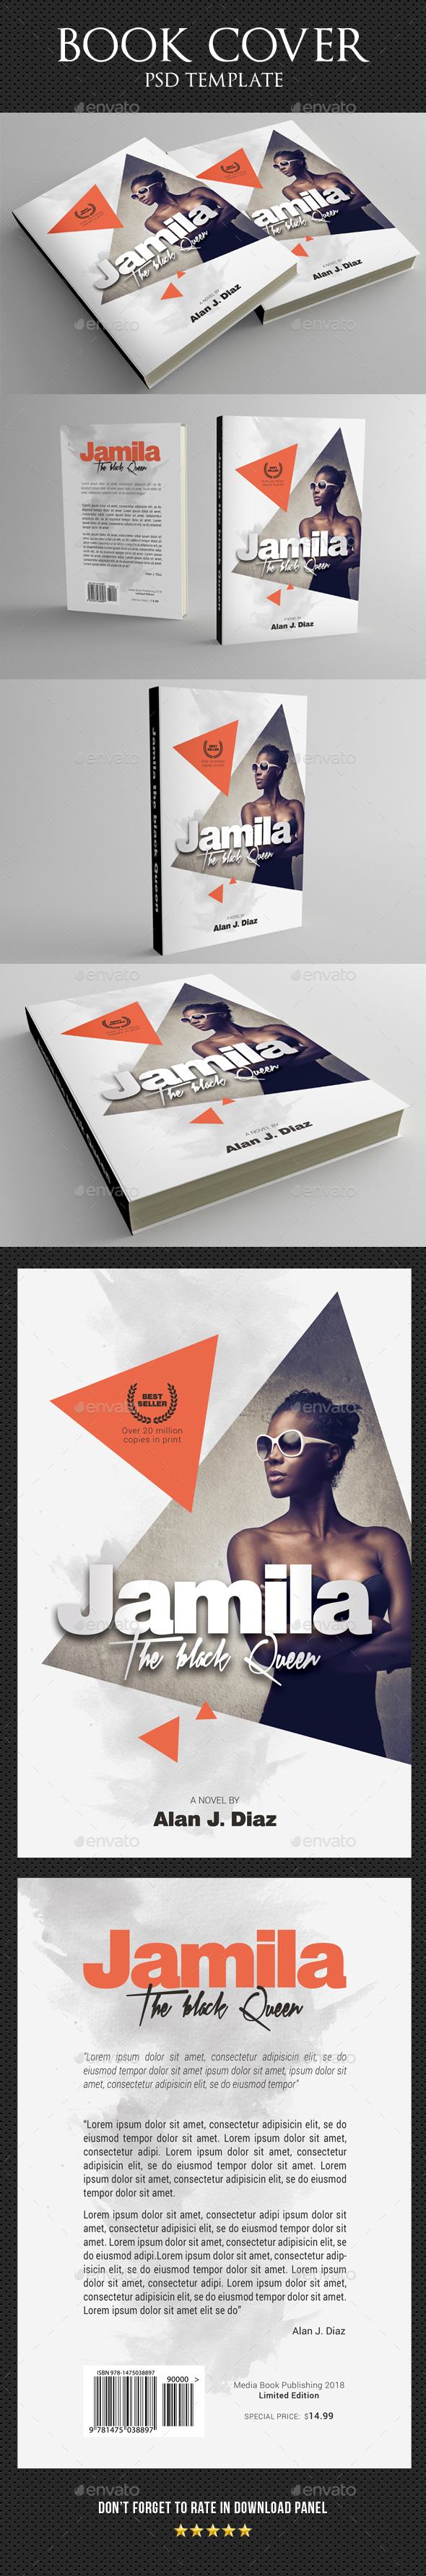 Book Cover Template 49 - Miscellaneous Print Templates